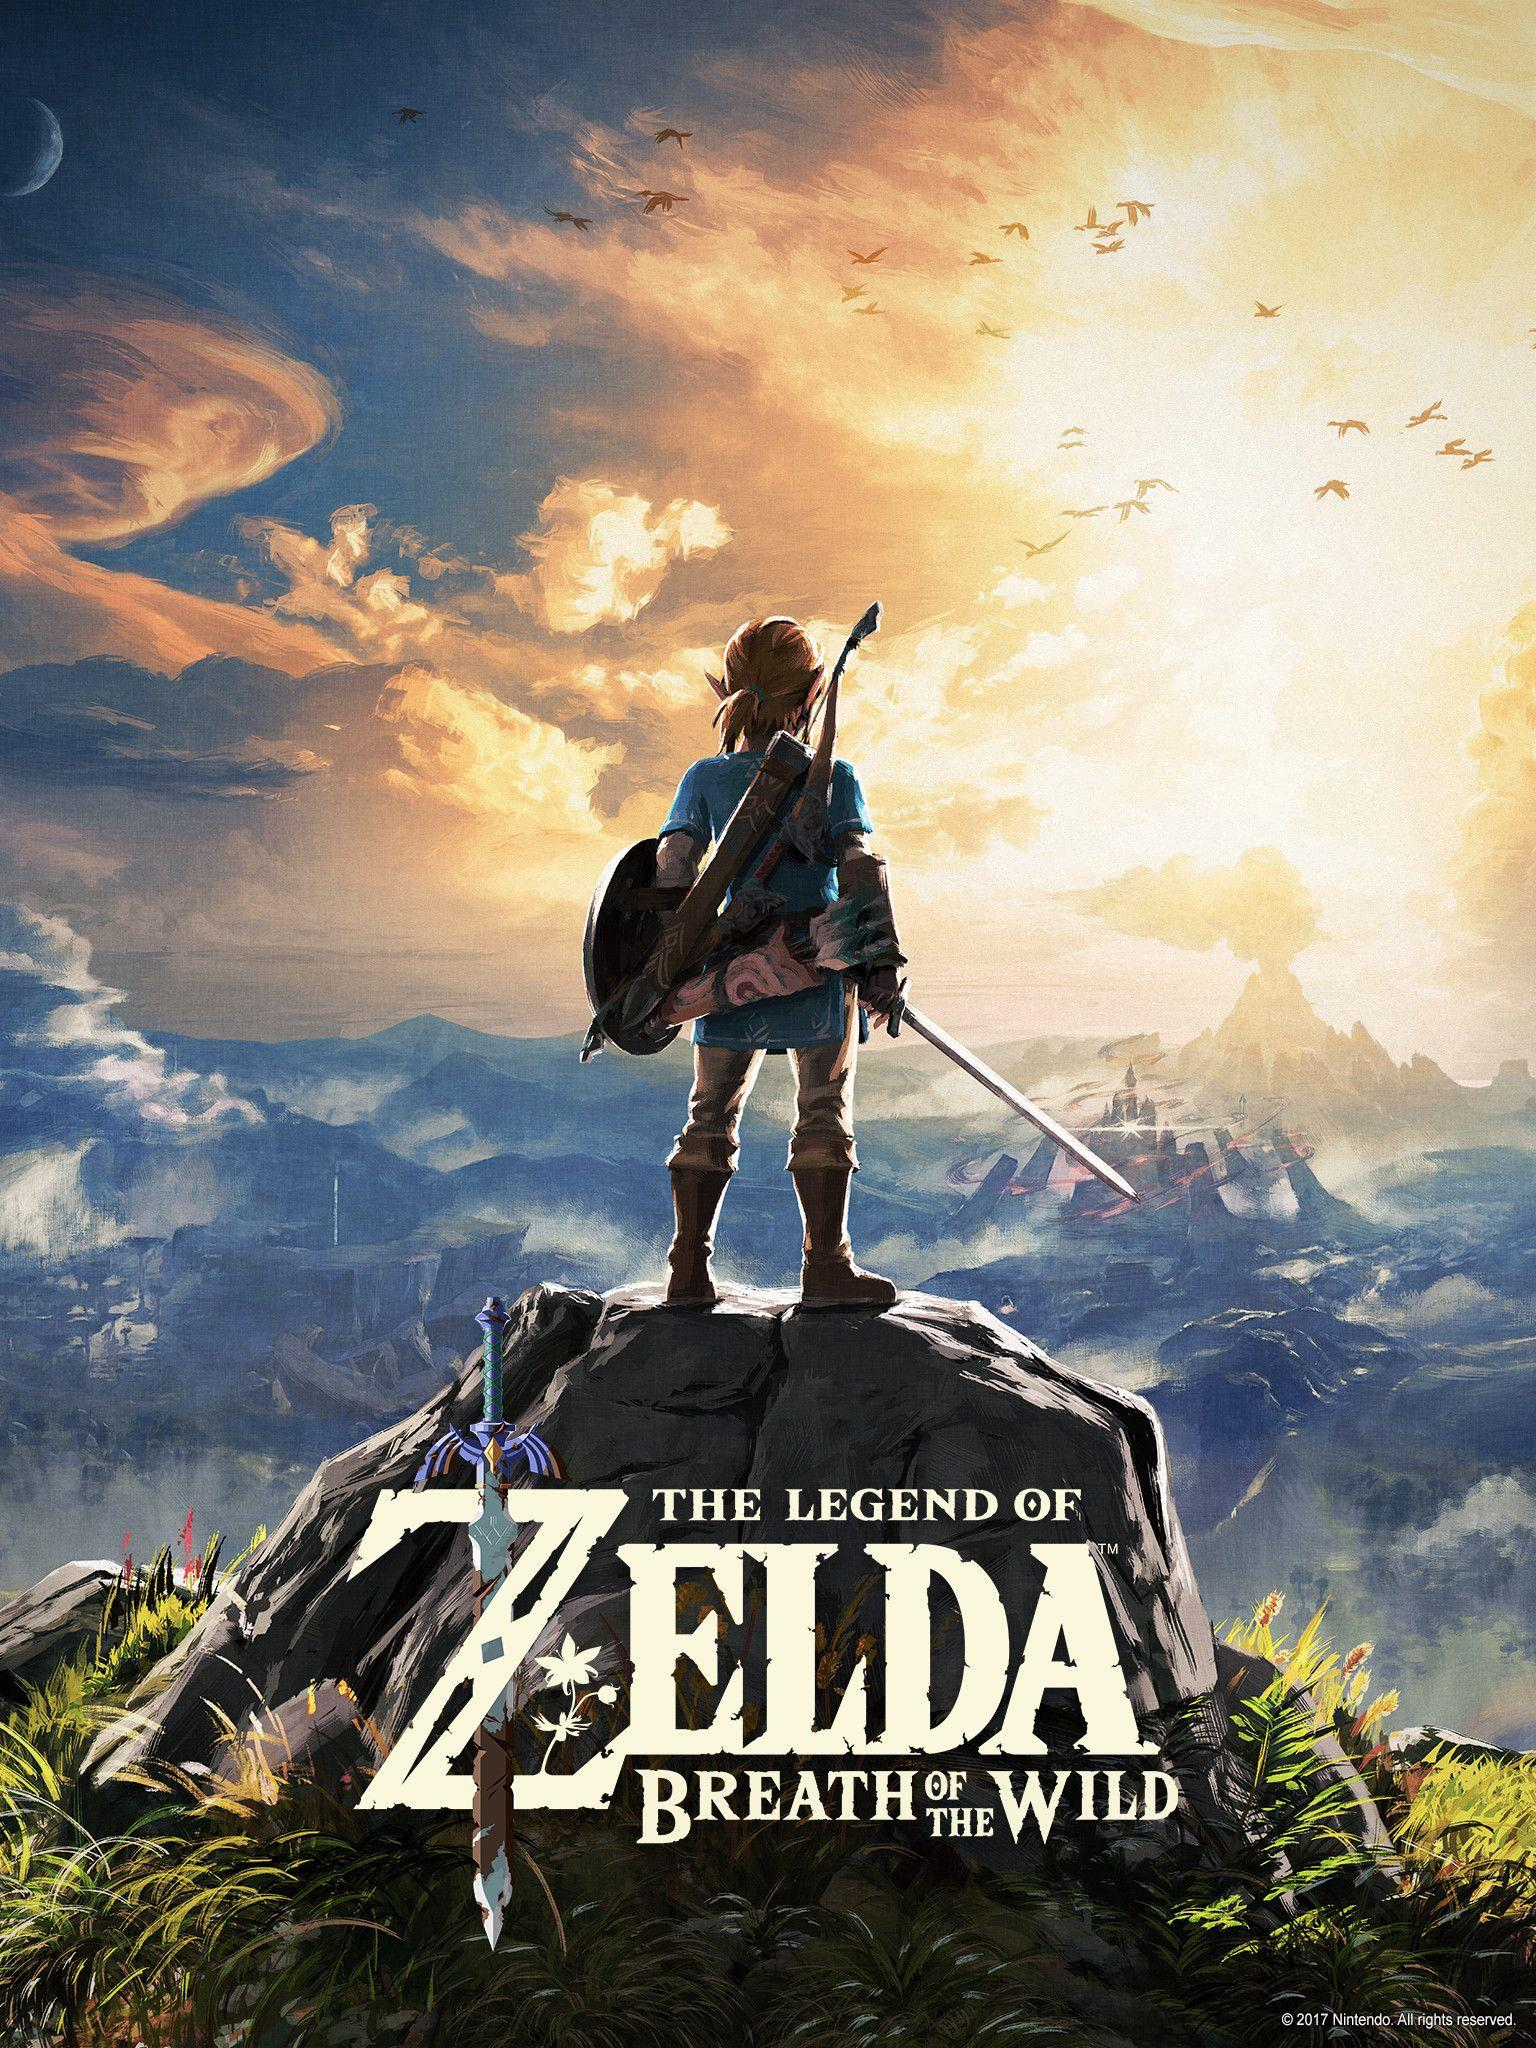 The Legend of Zelda™: Breath of the Wild for the Nintendo Switch